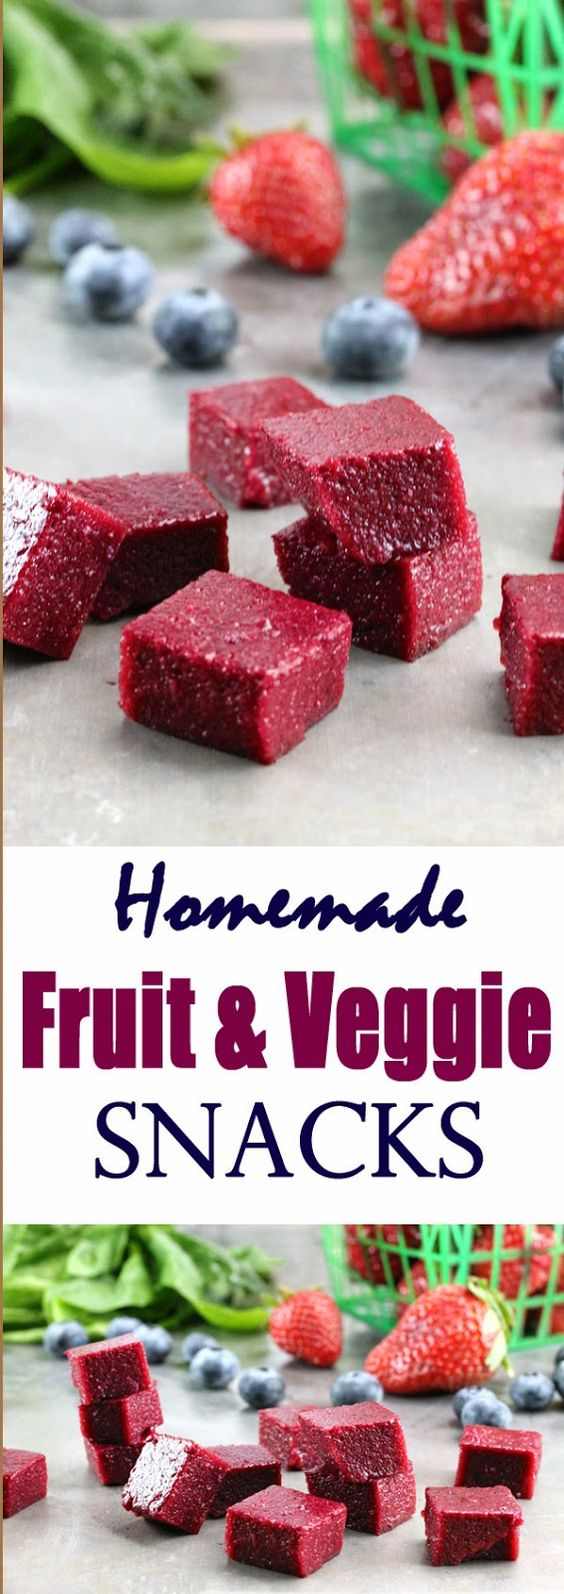 Make your own fruit snacks at home! It is super easy and kids love to help. You can even sneak veggies in for an extra healthy snack!